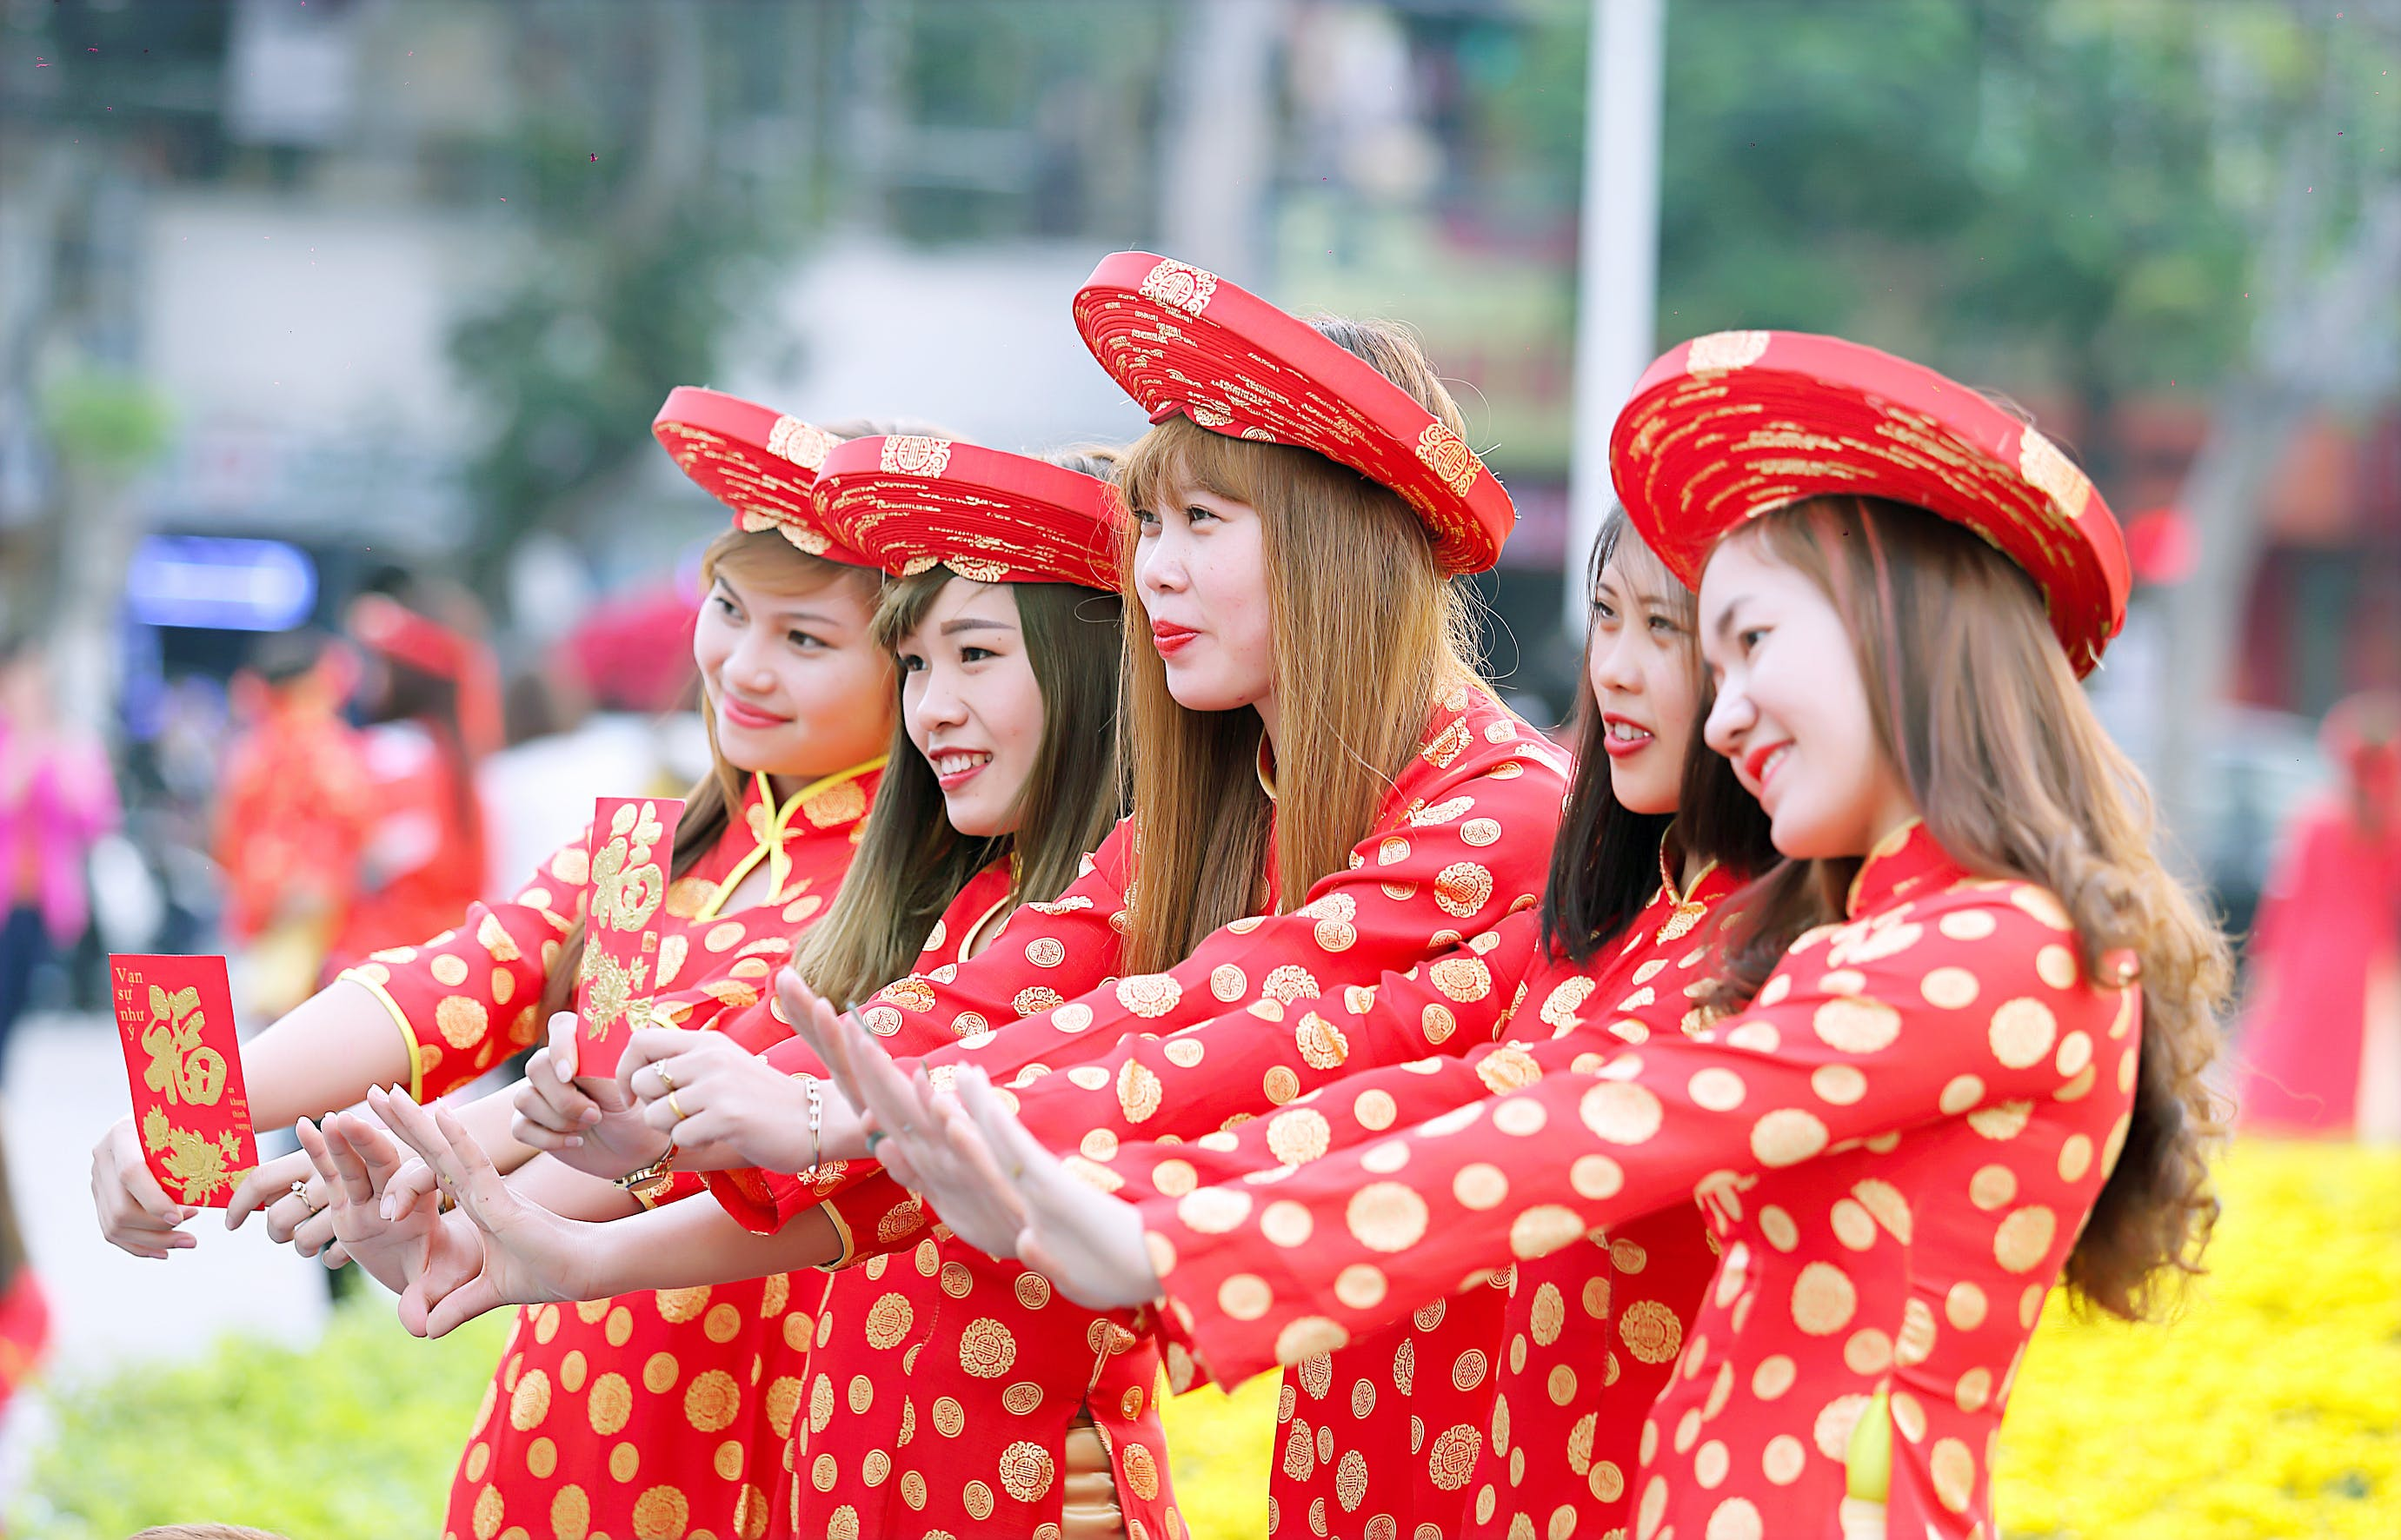 Five Women In Red And White Polka Dot Cheongsam Dress Standing